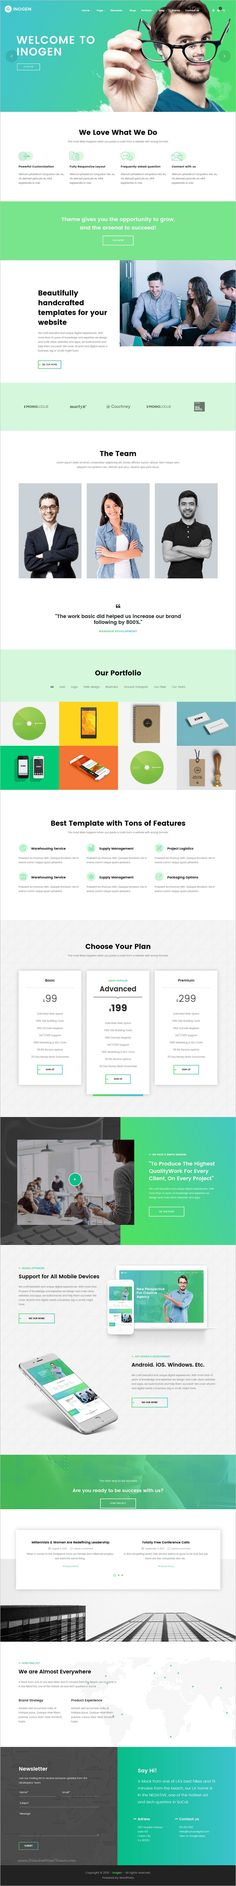 Inogen is a awesome multipurpose #WordPress theme for #webdev Creative #Agency, Business, Corporation, Architecture, Portfolio or simple only a website with One page with 20+ unique homepage layouts download now➩ https://themeforest.net/item/inogen-multipurpose-creative-wordpress-theme/18501701?ref=Datasata